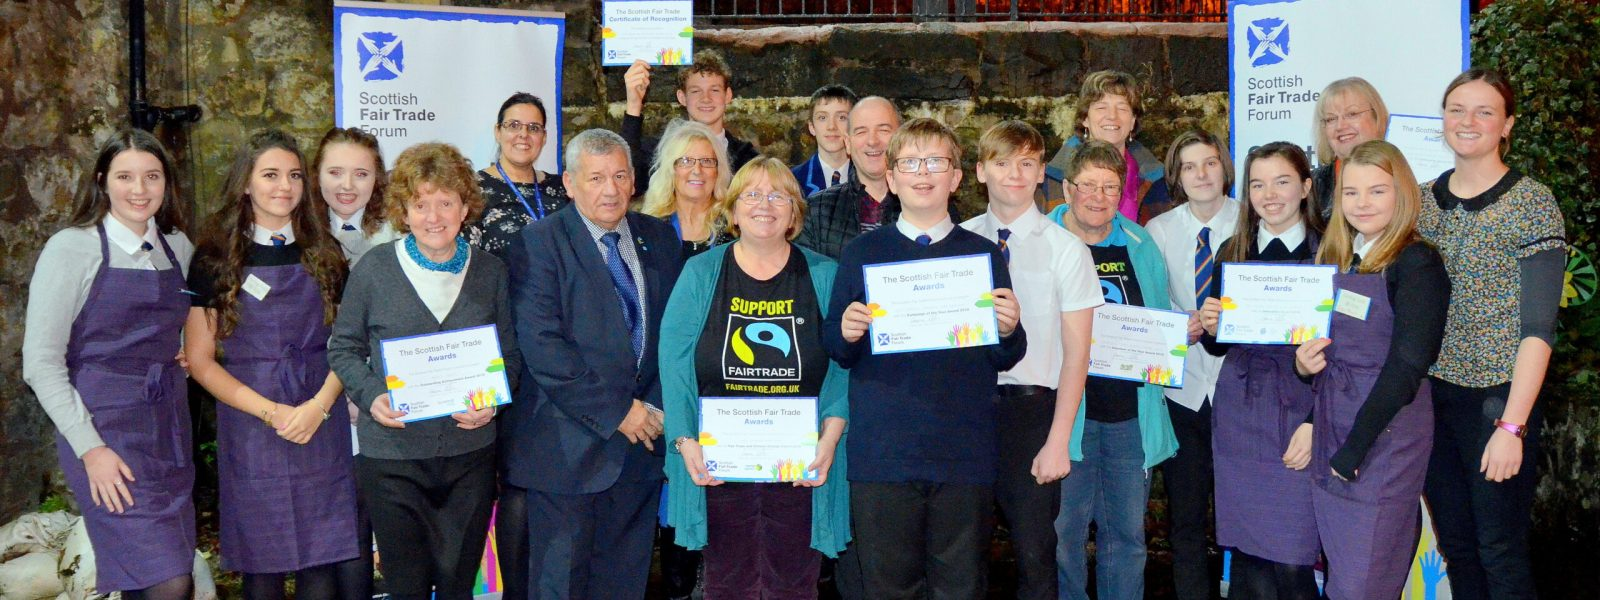 Group of children and few adults showing their Scottish fair Trade Award